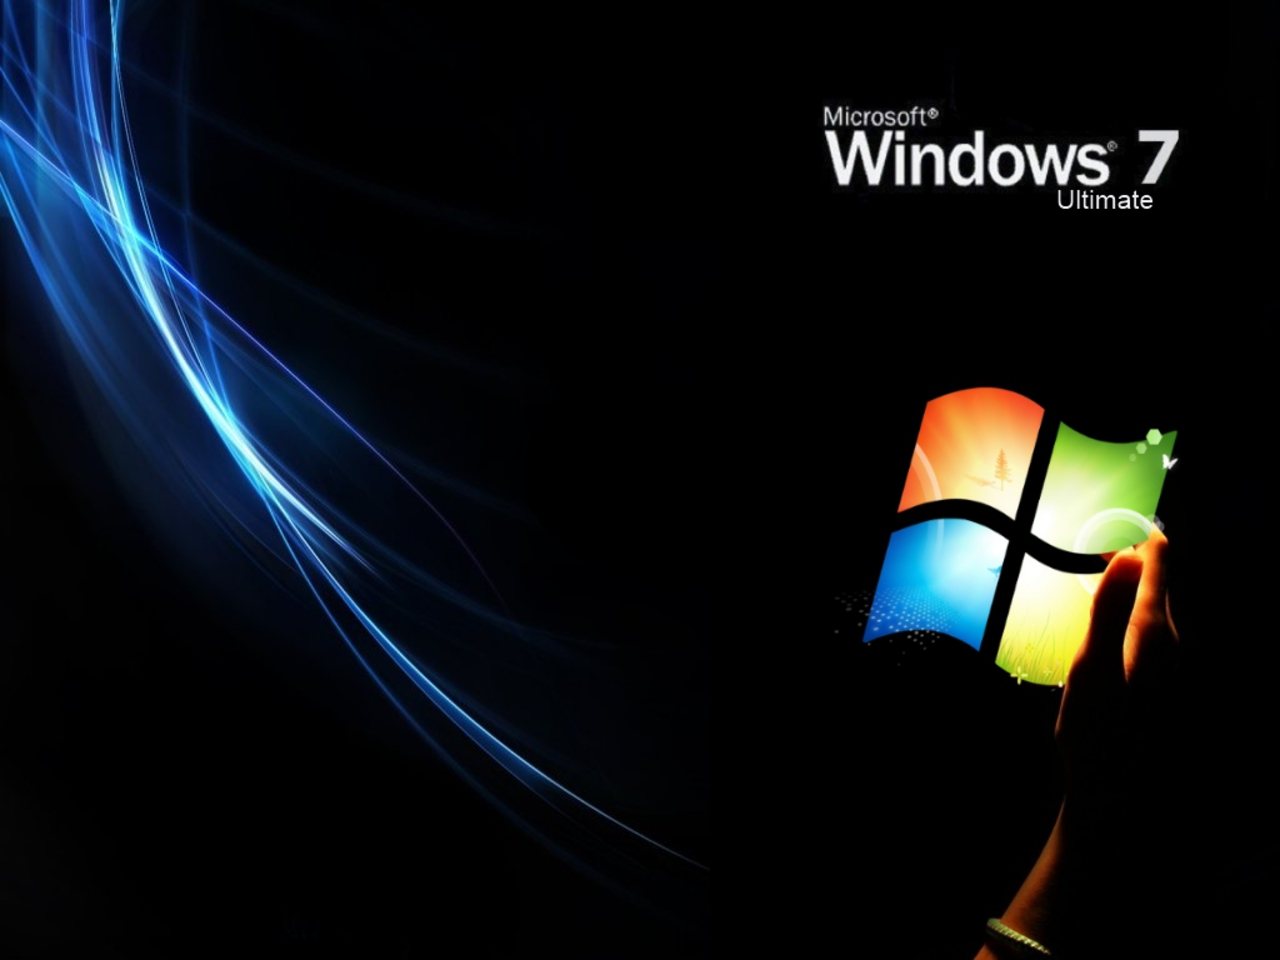 Hd wallpapers of windows 7 ultimate unique things for Window 7 ultimate